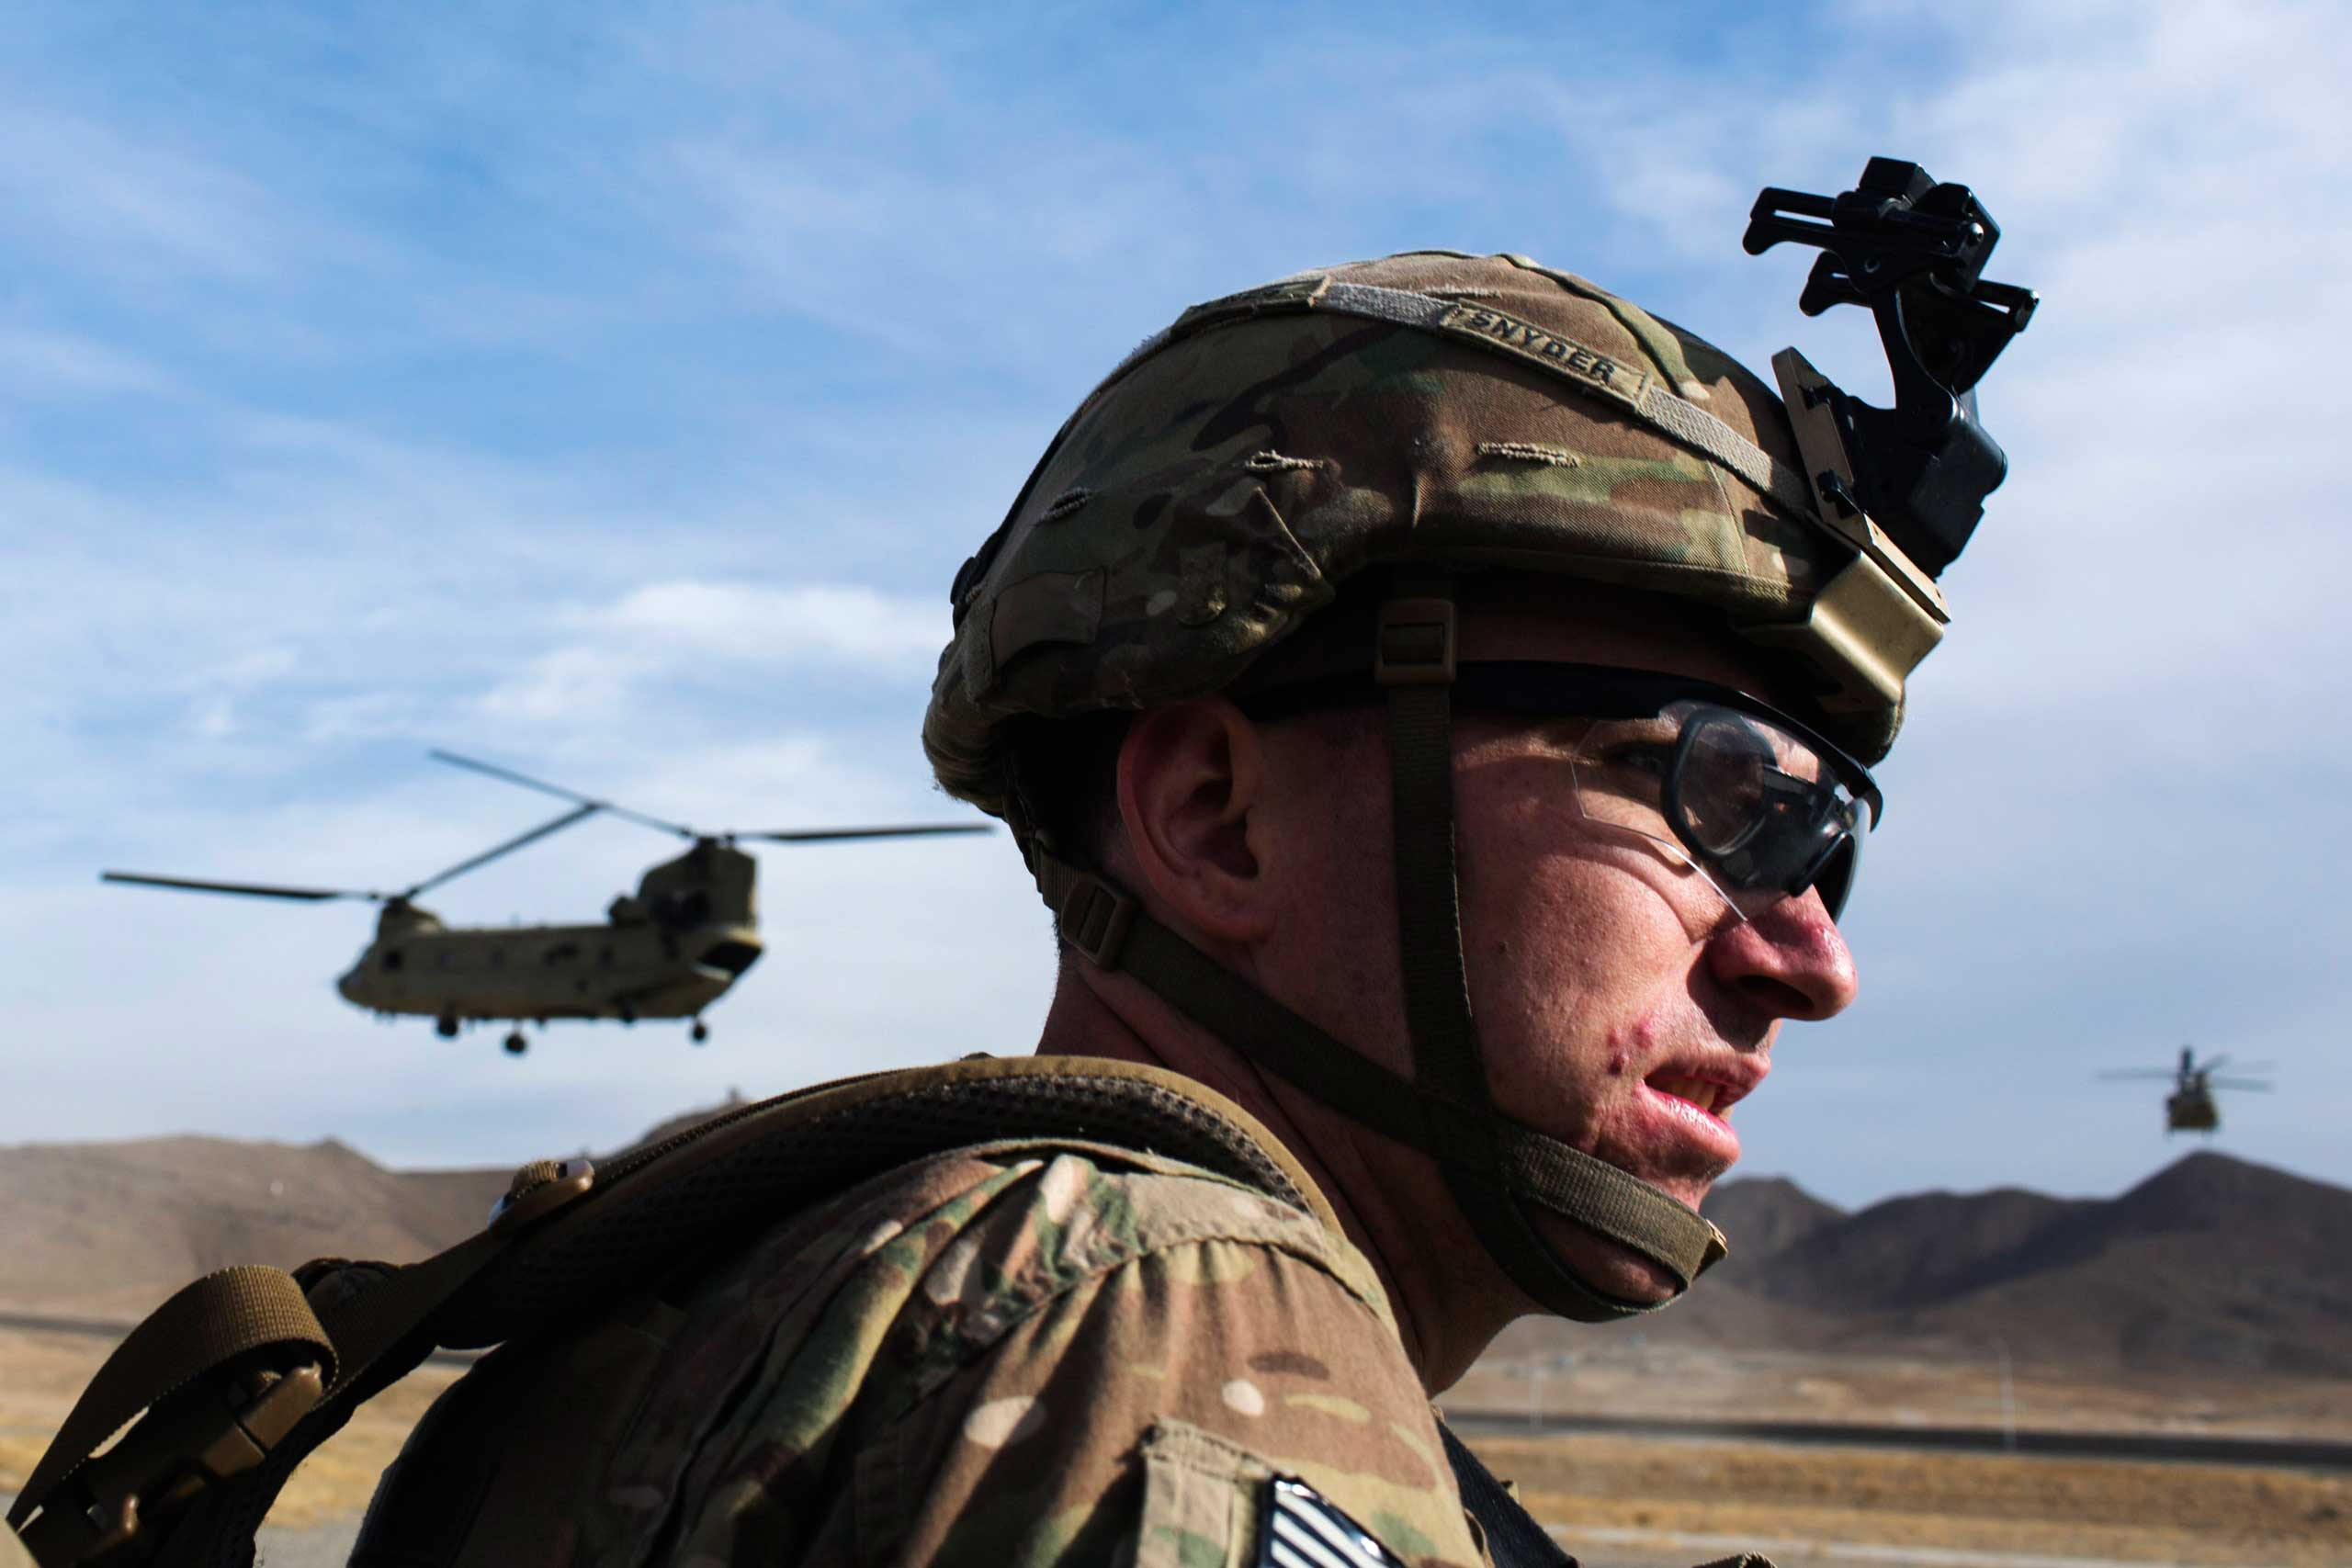 A U.S. soldier from the 3rd Cavalry Regiment waits for a CH-47 Chinook helicopter after an advising mission at the Afghan National Army headquarters for the 203rd Corps in the Paktia province of Afghanistan on Dec. 21, 2014.